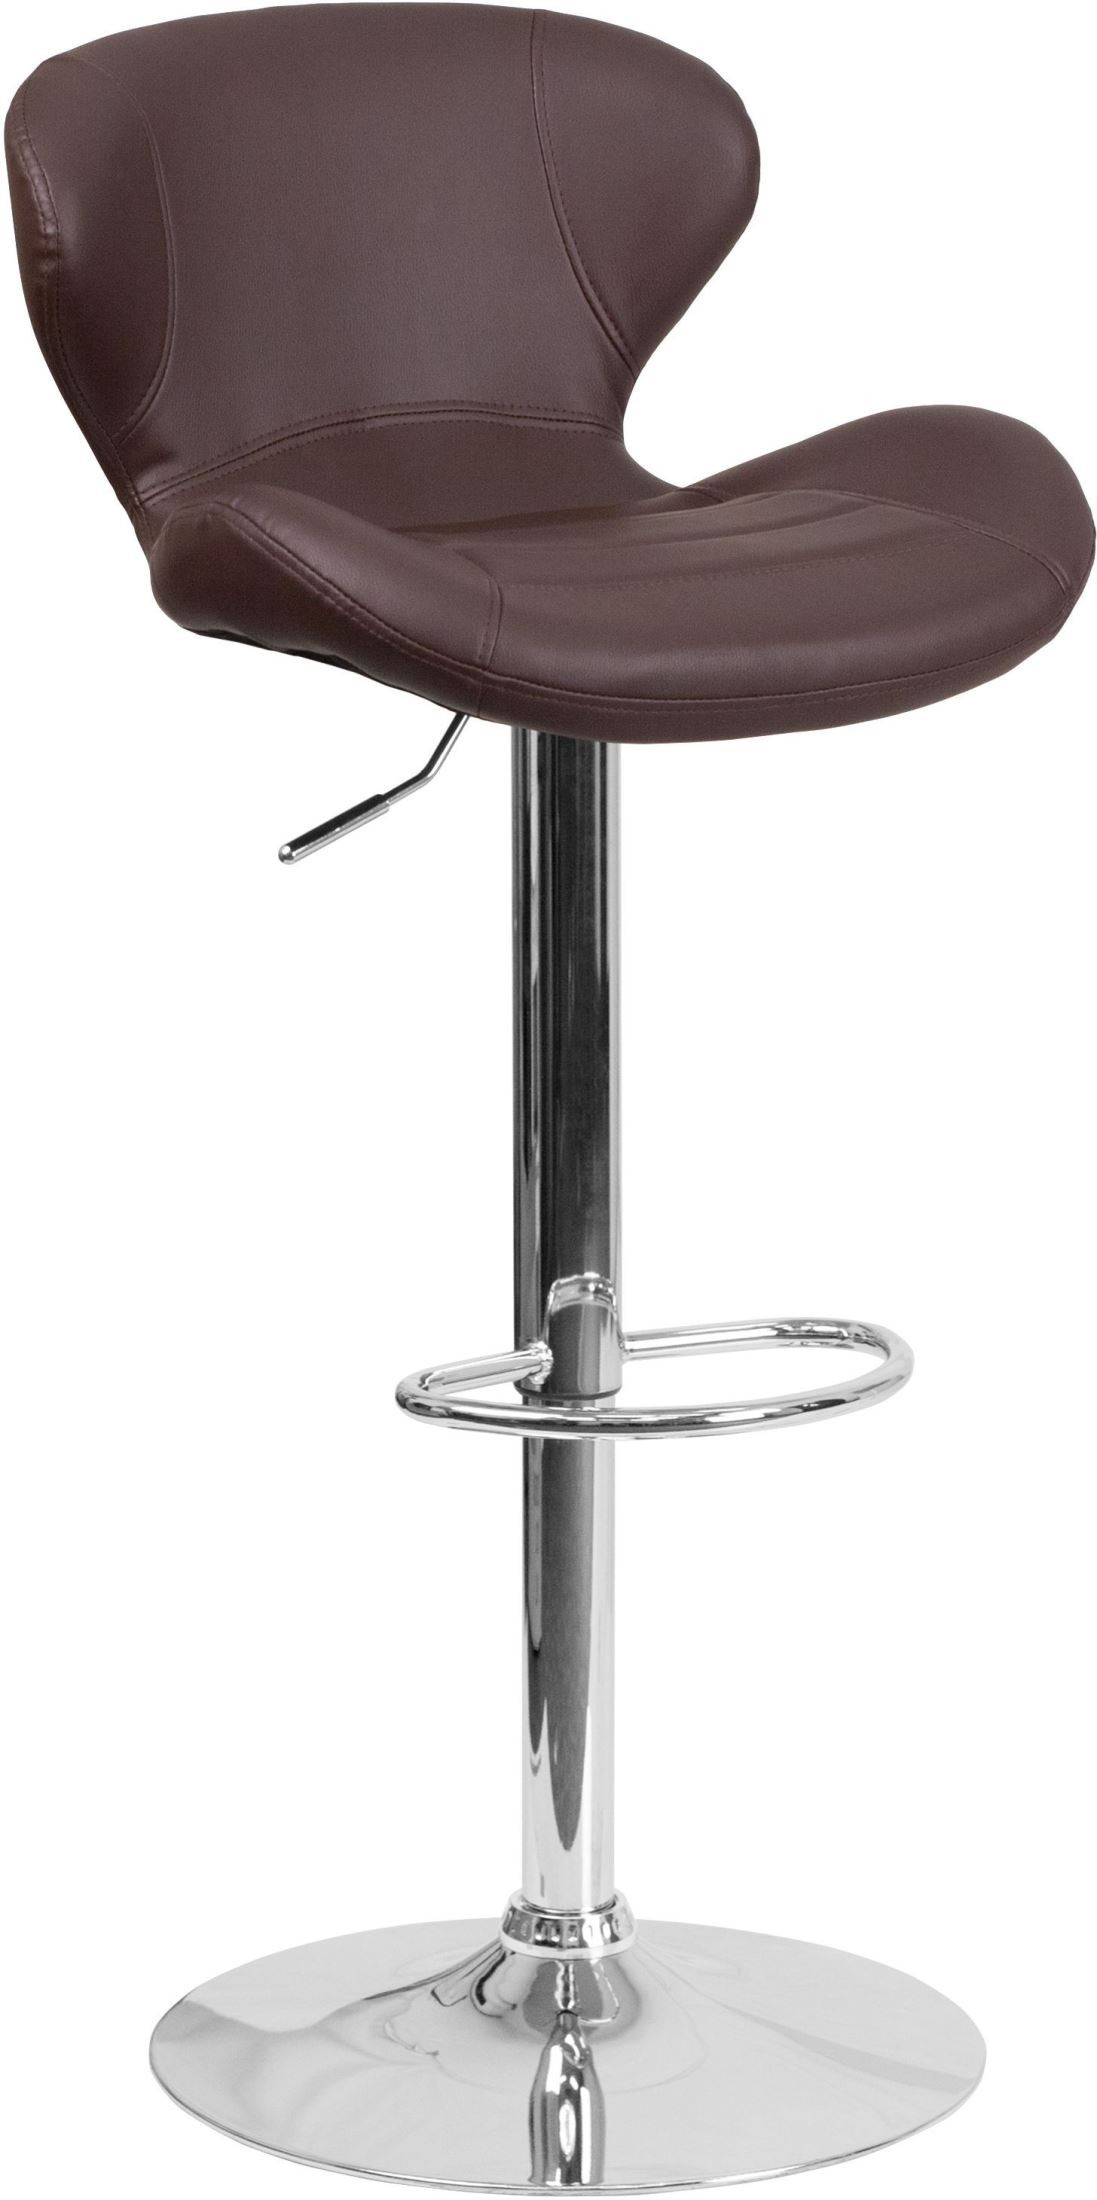 Brown Adjustable Bar Stool Brown Vinyl Upholstery Adjustable Height Bar Stool From